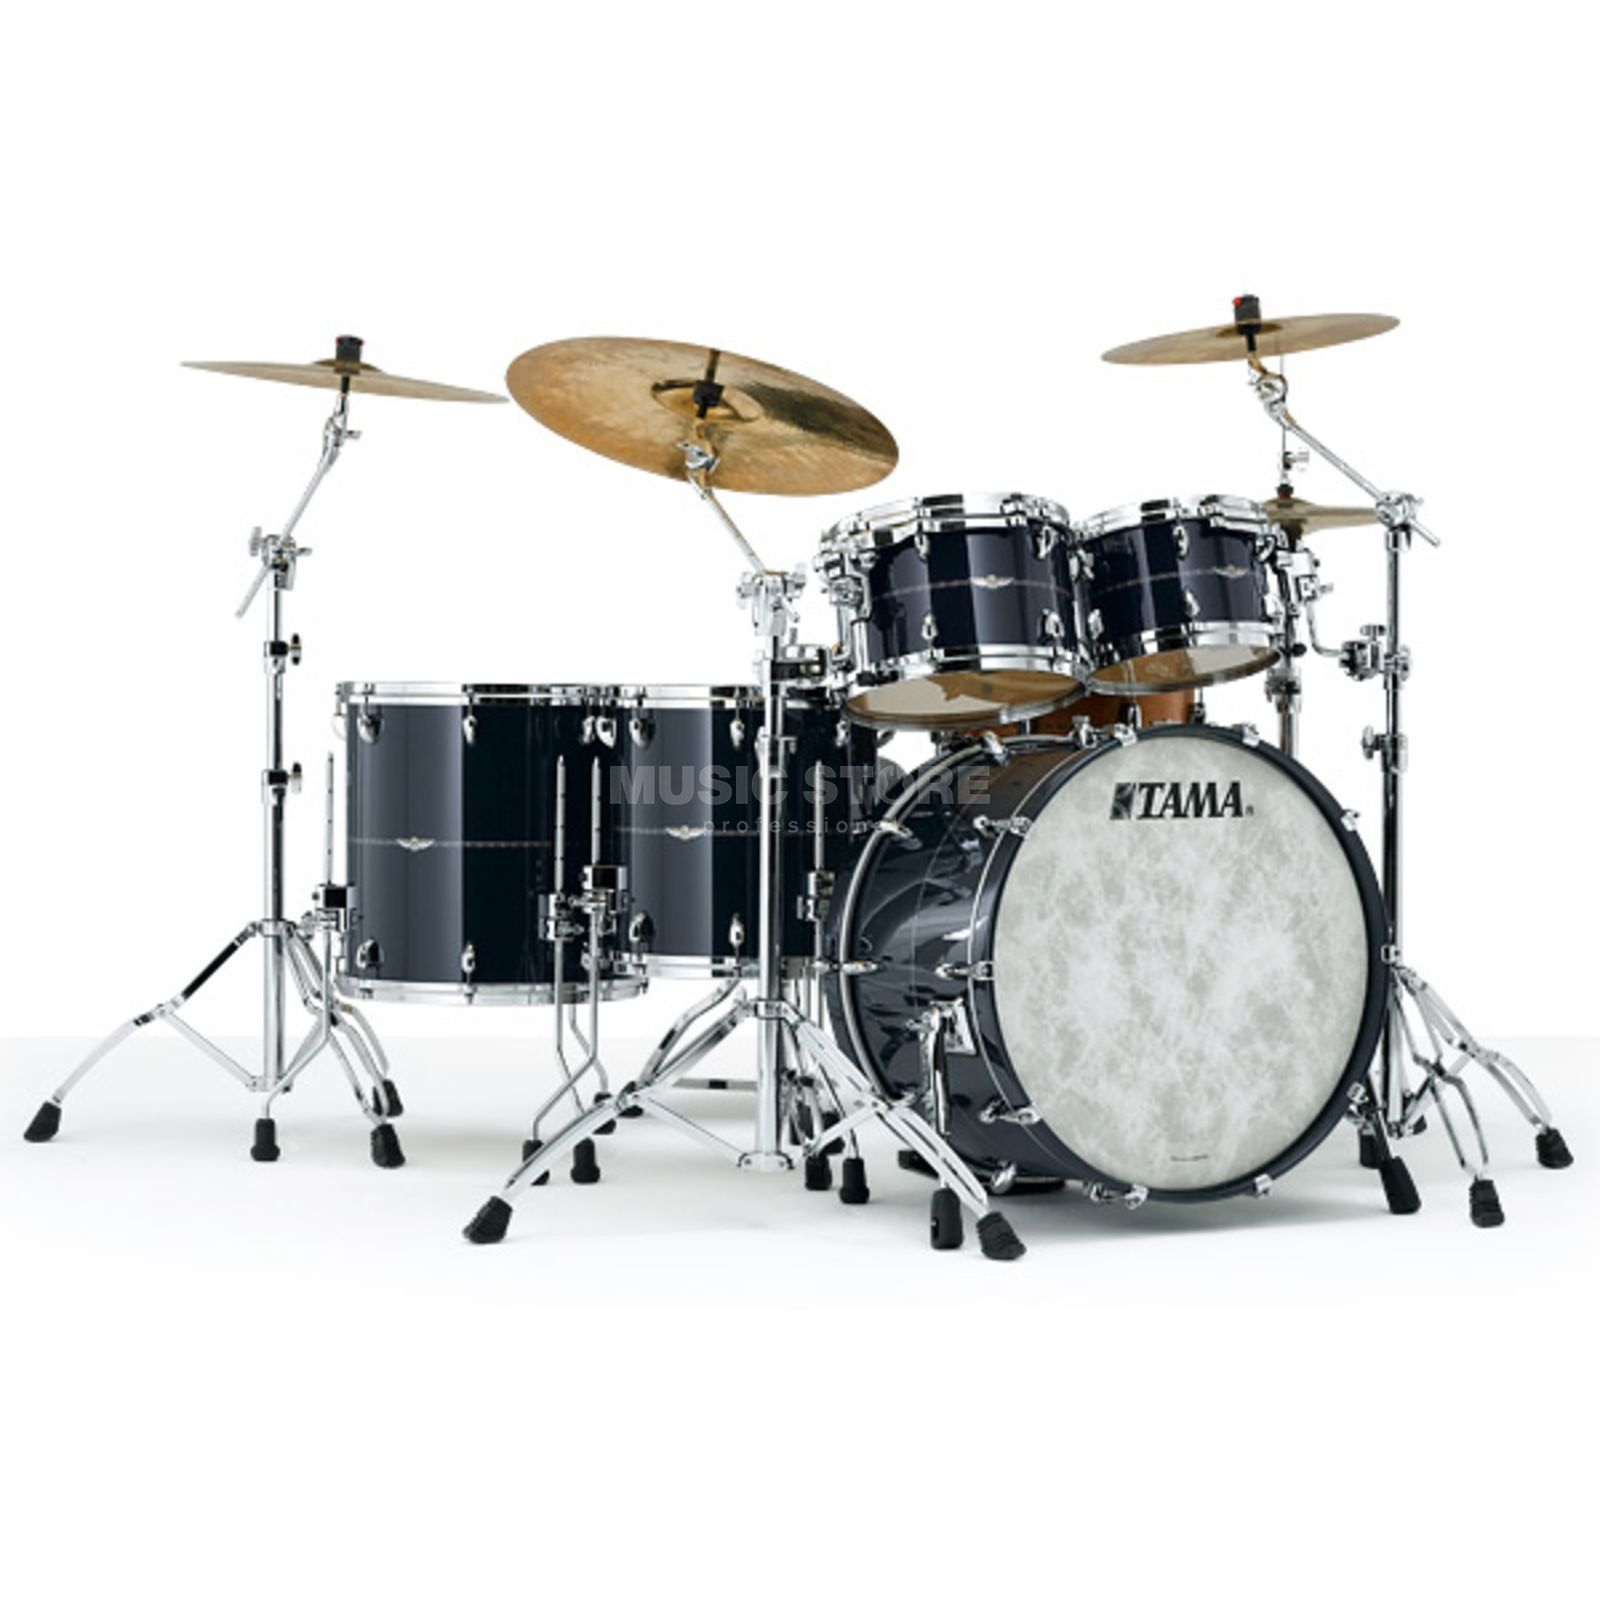 Tama Star Maple ShellSet, B-WARE Smokey Black, DEMO-Set Produktbild